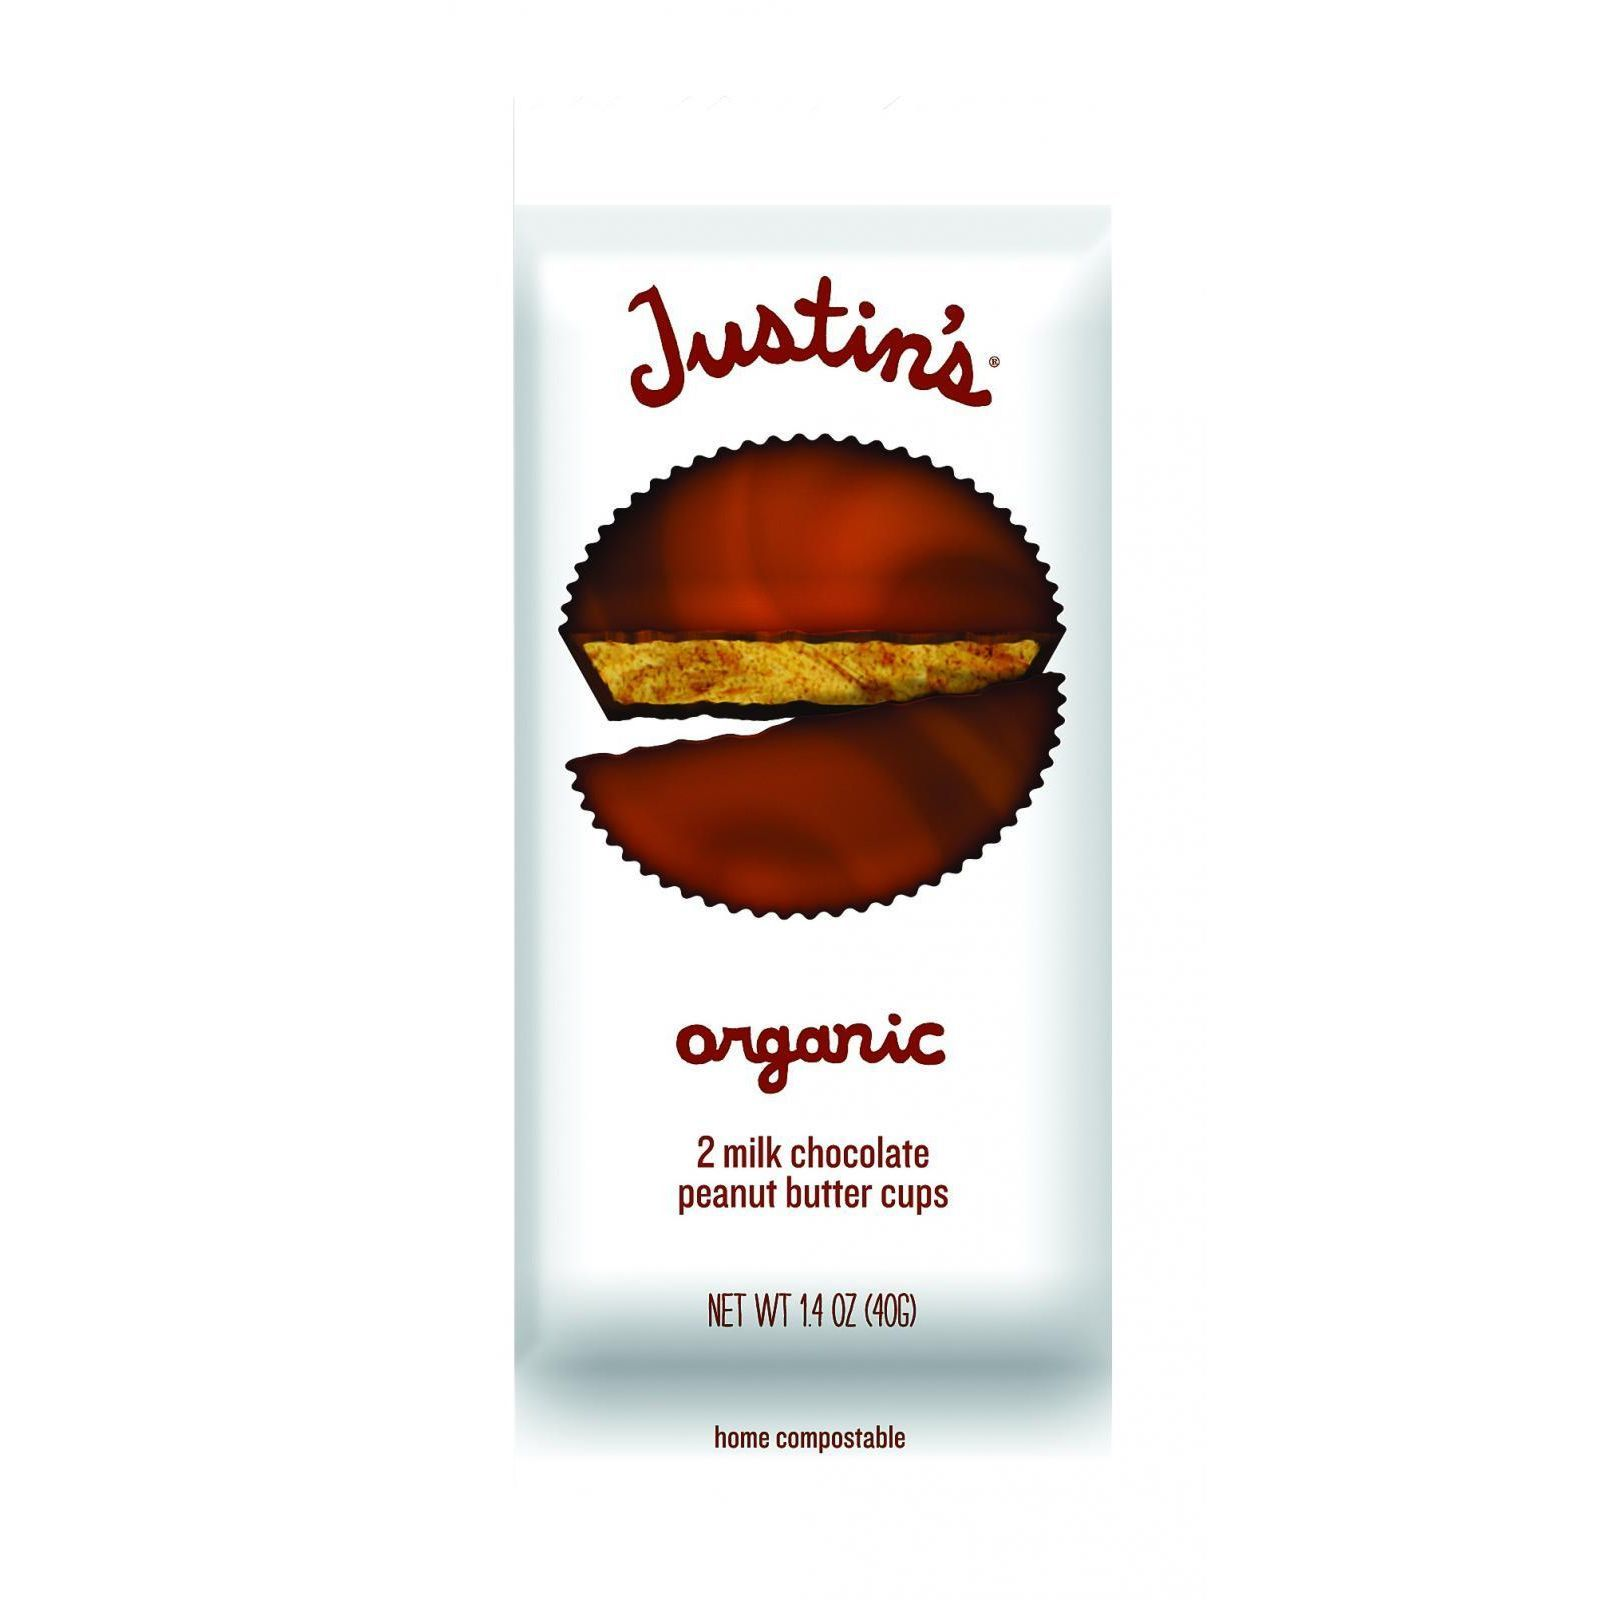 Justin's Nut Butter Organic Peanut Butter Cups - Milk Chocolate - Case of 12 - 1.4 oz.